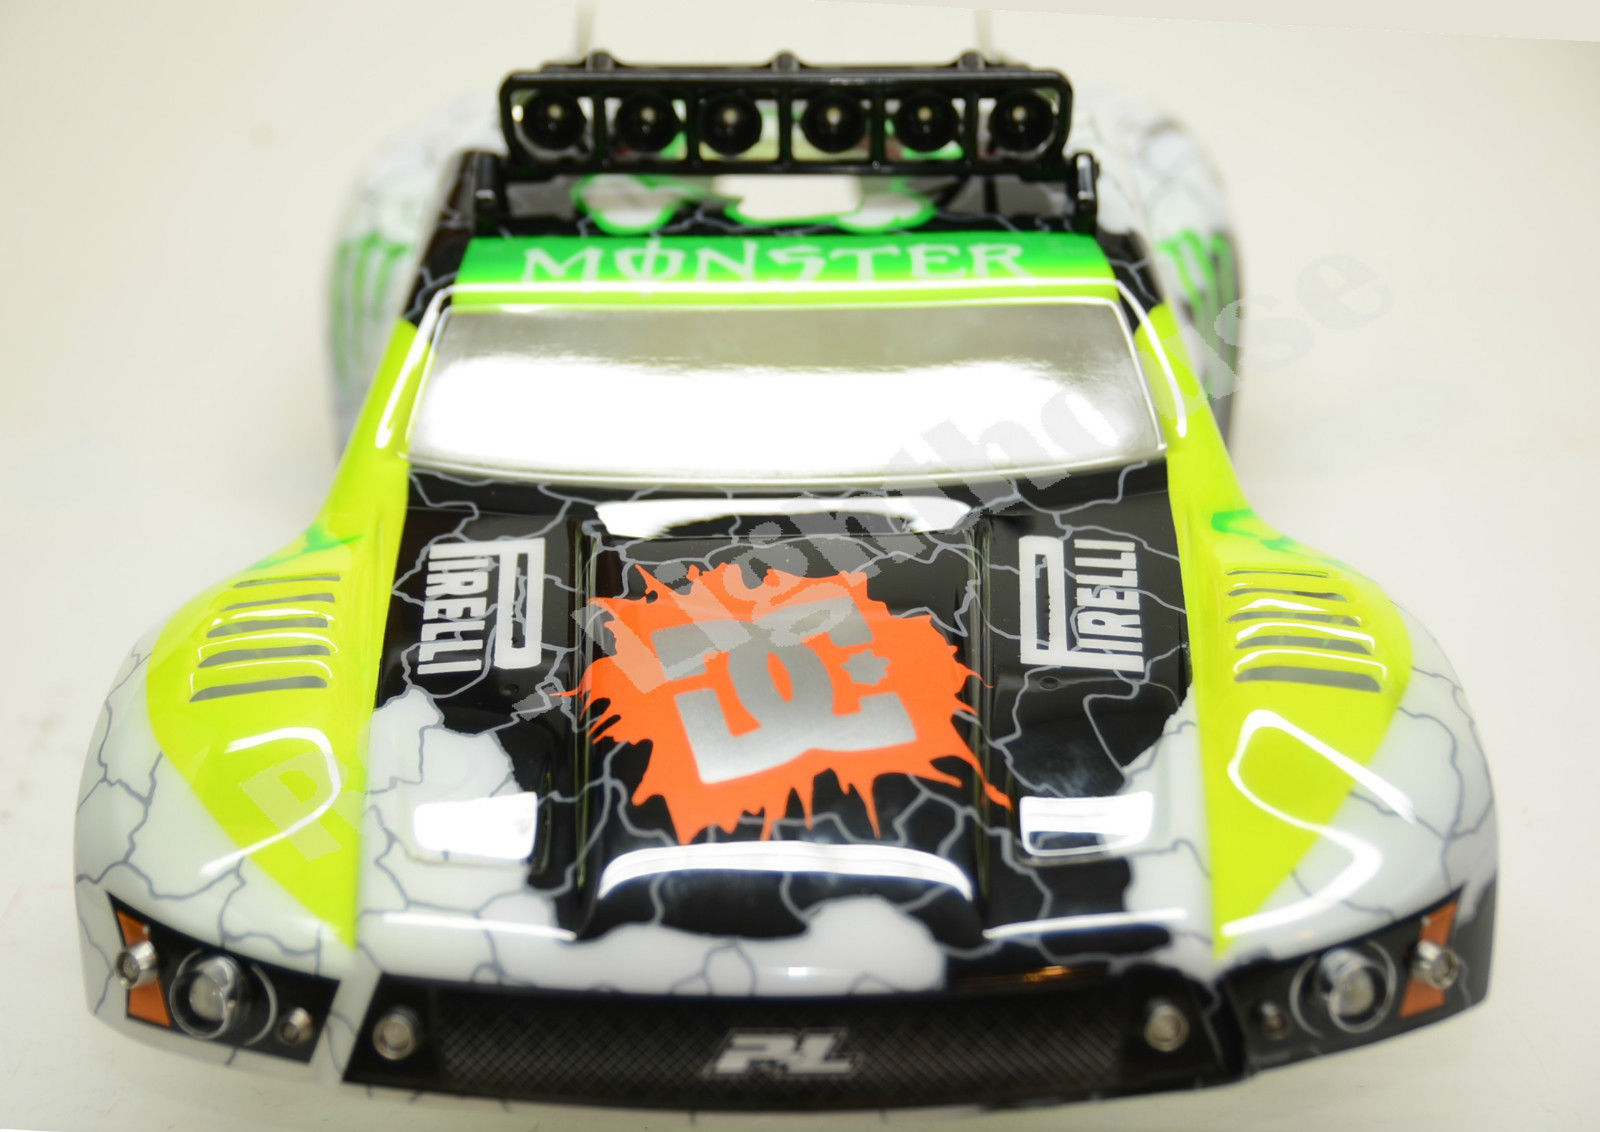 18 traxxas slash 4x4 or 2wd rc10 led light set with rpm light bar 18 traxxas slash 4x4 or 2wd rc10 led light set with rpm light bar aloadofball Gallery